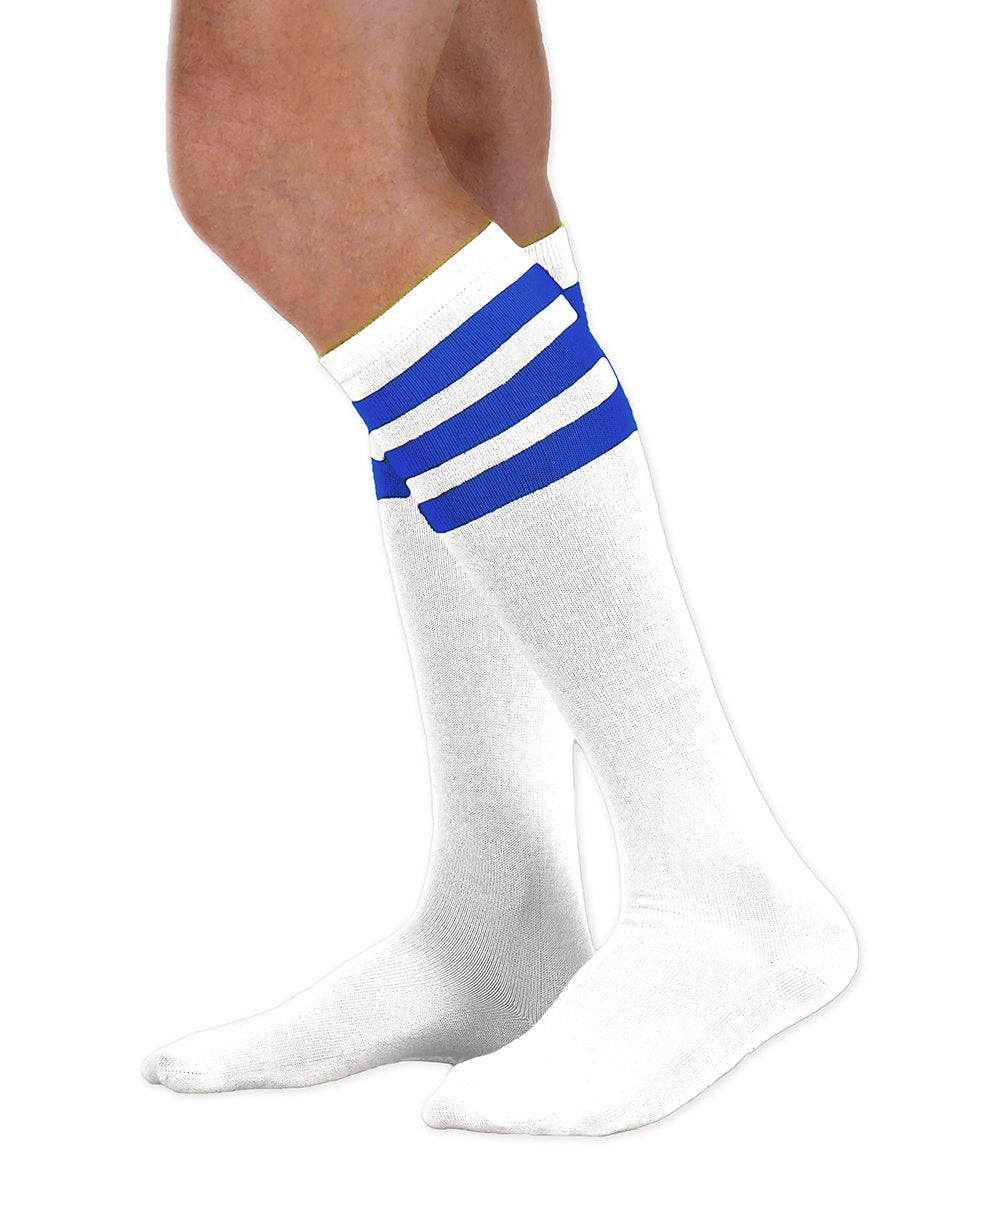 Unisex adult size white knee high tube sock with three royal blue stripes